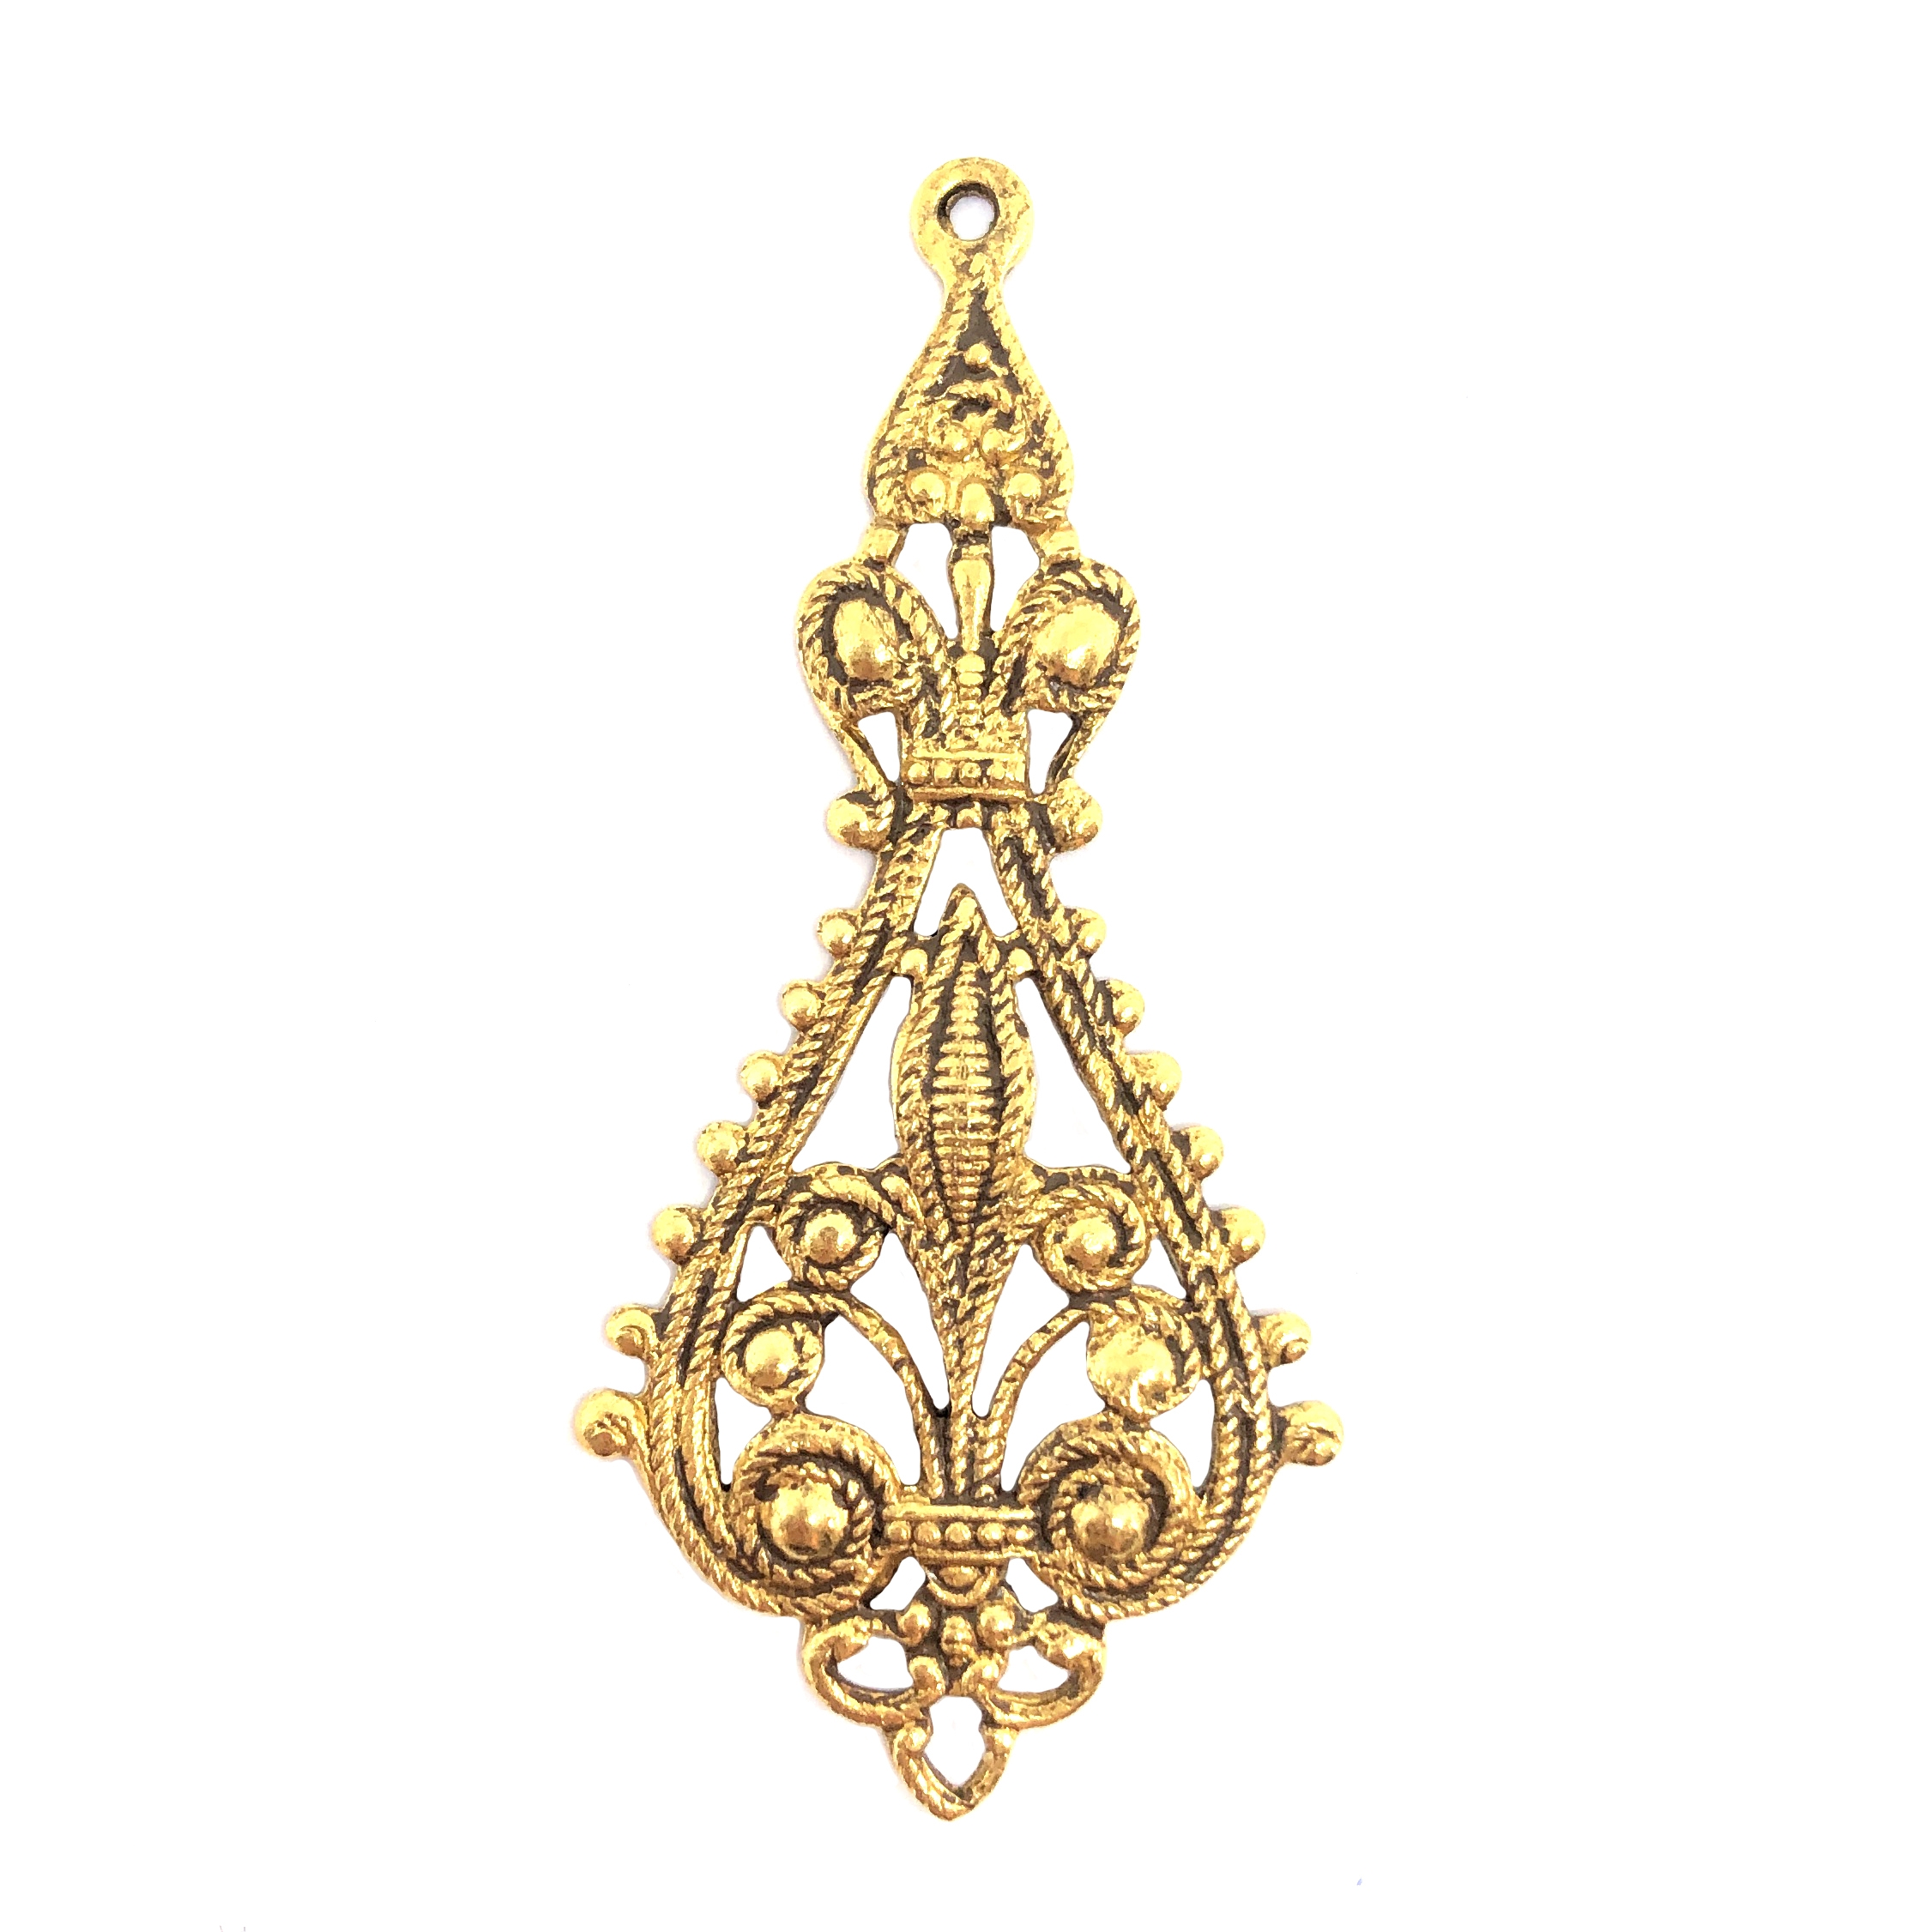 brass filigree, classic gold, ear drops, plated brass, 55 x 25mm, 09743, earrings, pendant, filigree pendant, ear drop, drop, filigree earrings, jewelry supplies, B'sue Boutiques